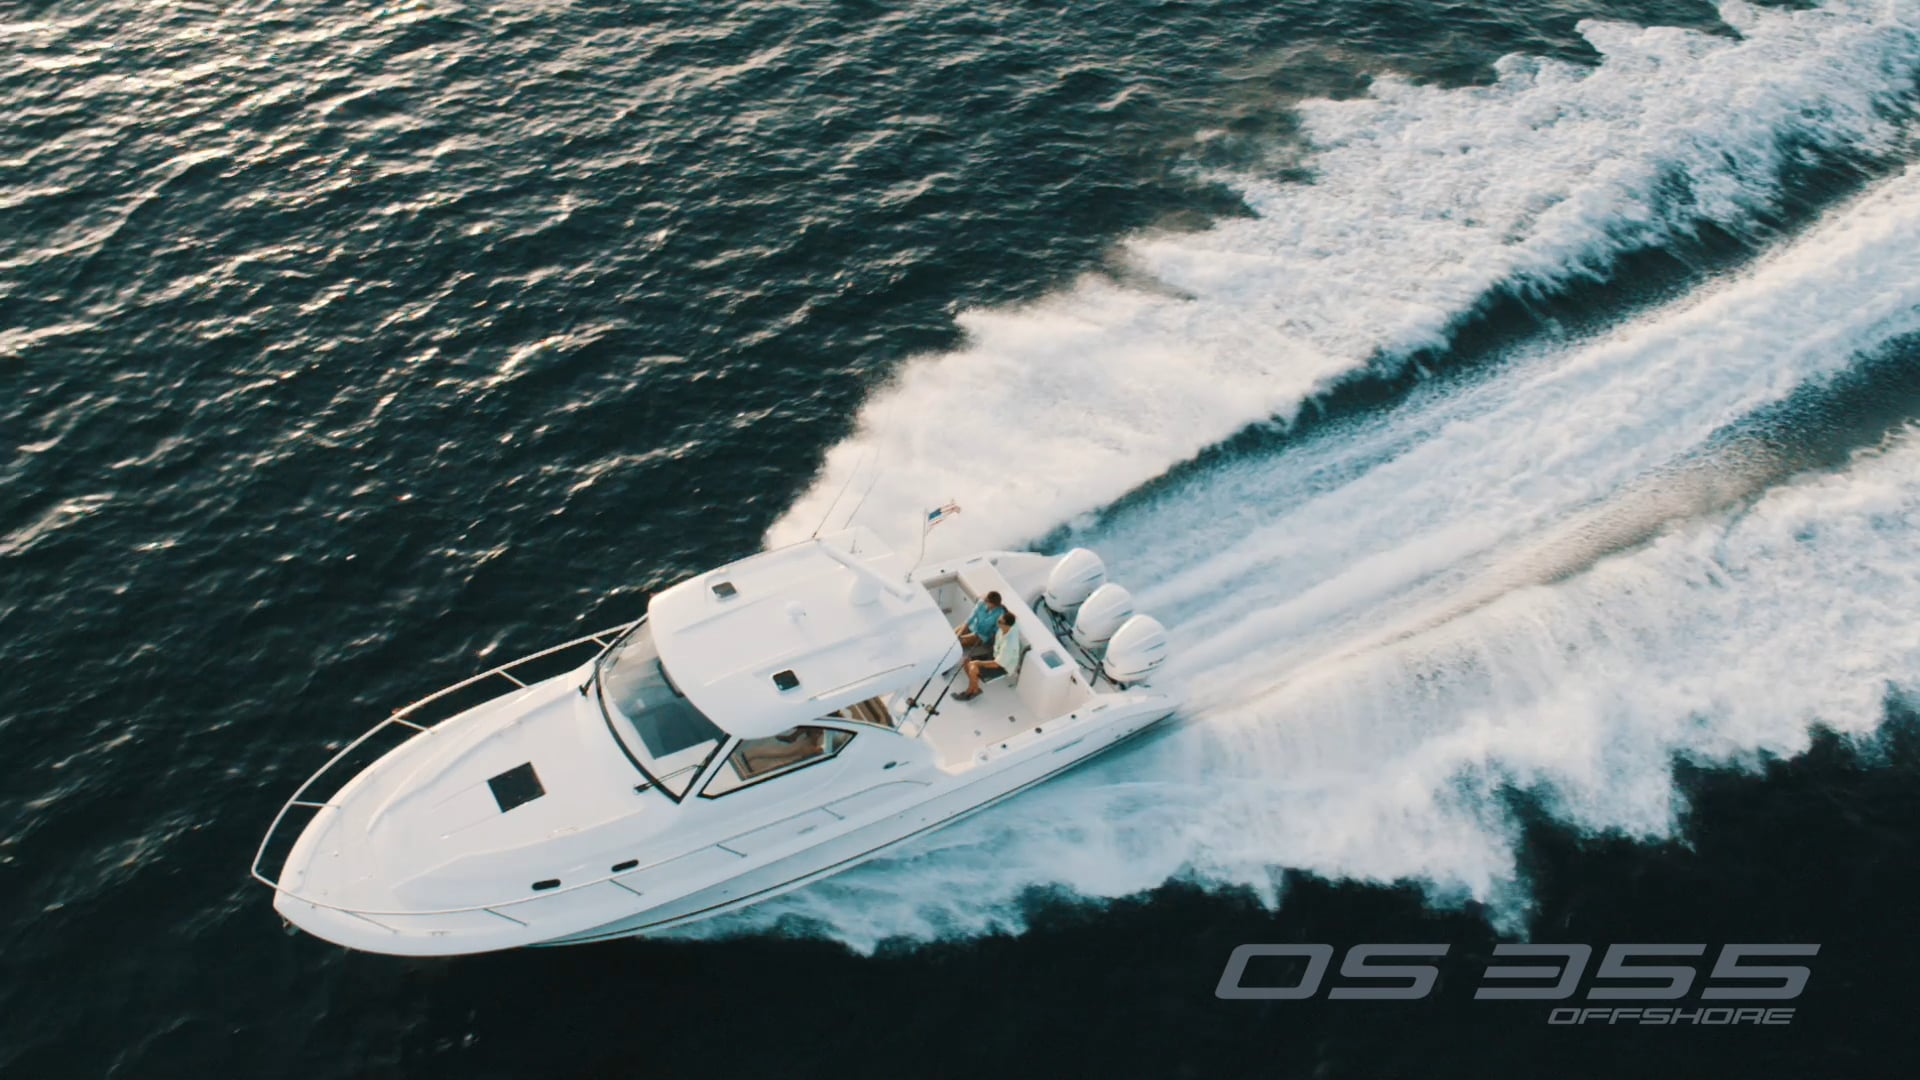 Aerial overhead view of white OS 355 offshore boat running left offshore with triple outboard engines.